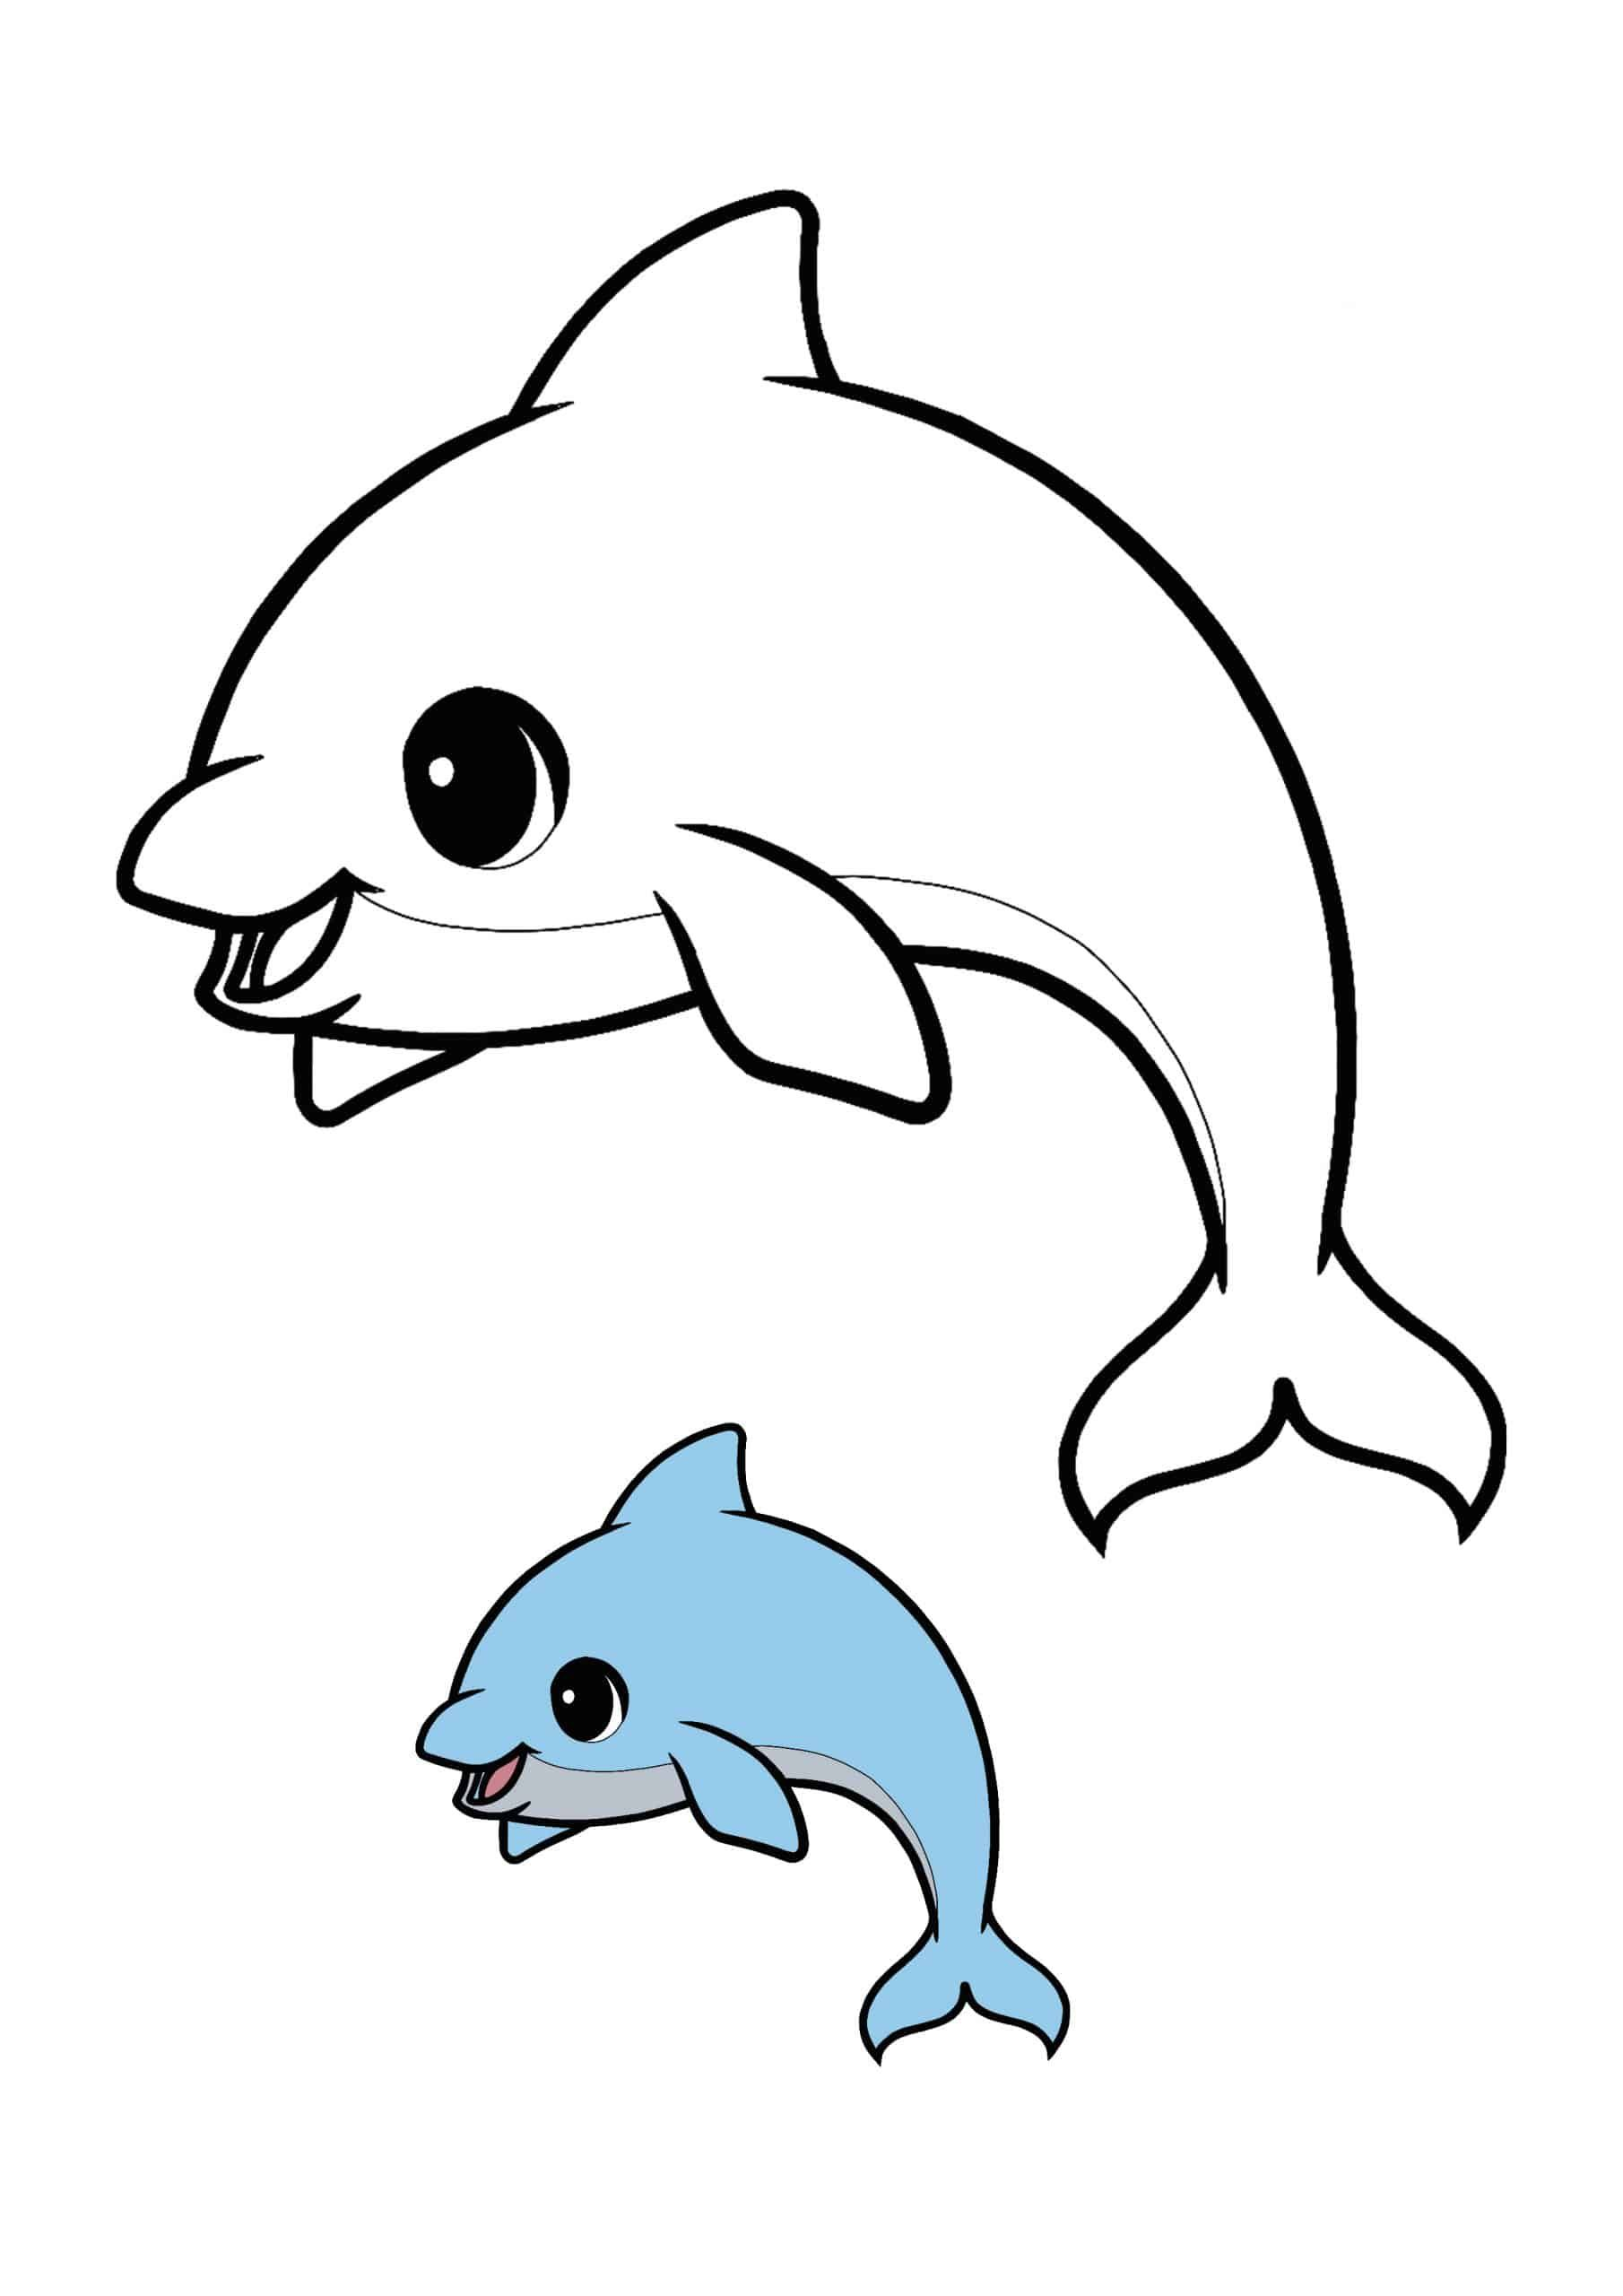 Kawaii Dolphin Easy Coloring Page Dolphin Coloring Pages Coloring Pages Chibi Spiderman